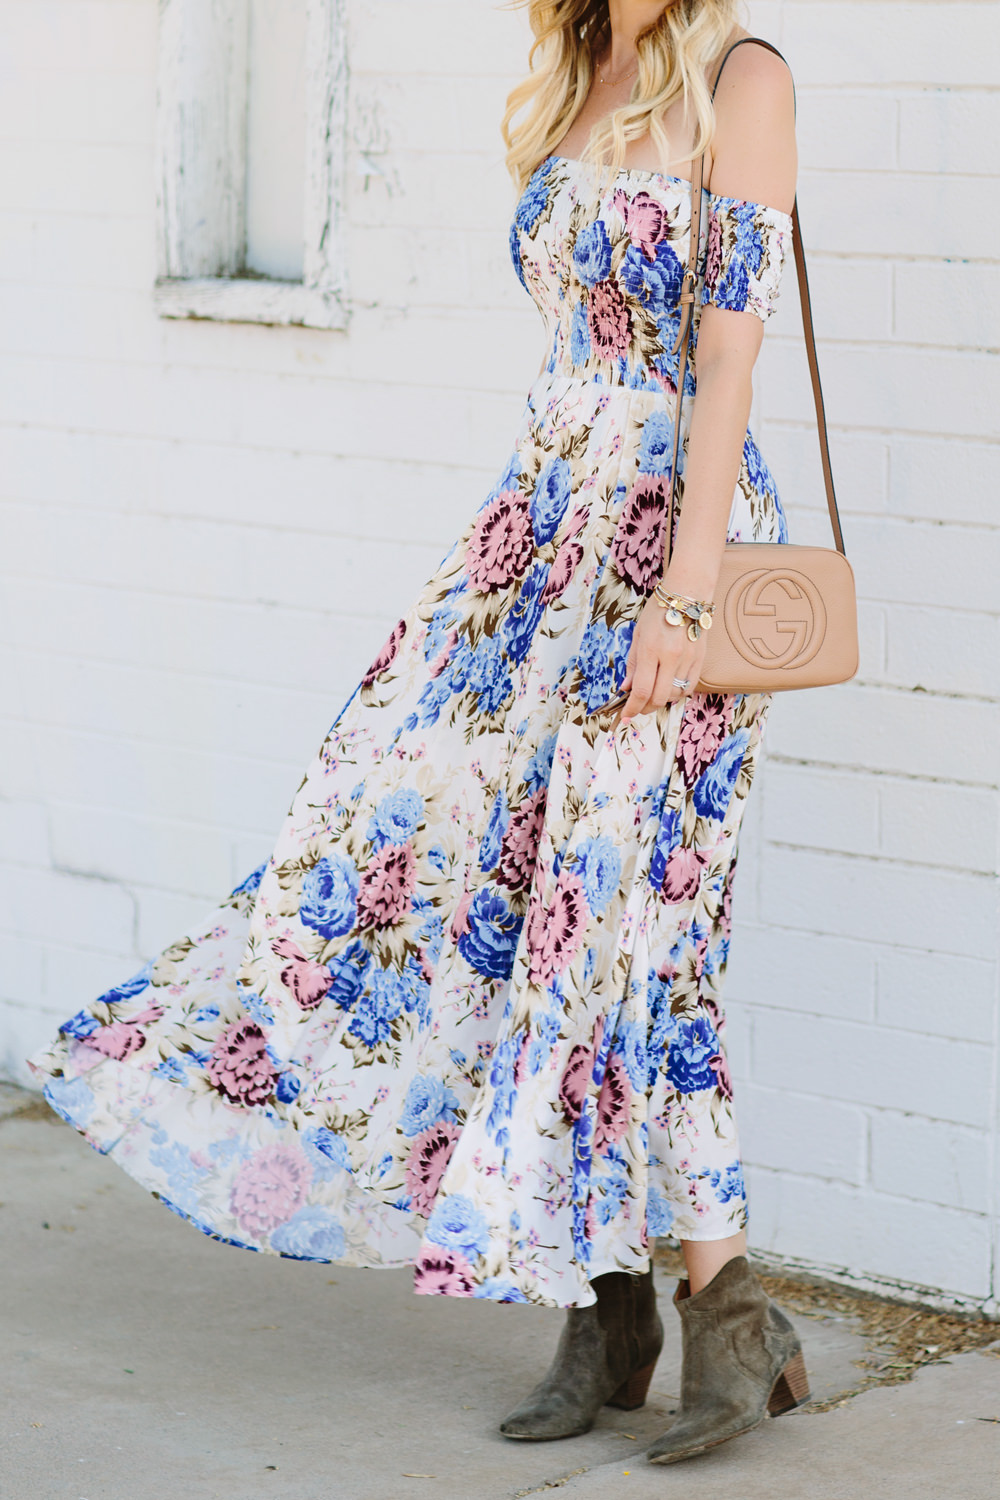 Dash of Darling styles an off shoulder floral maxi dress by Auguste from Revolve for the perfect bohemian summer outfit.